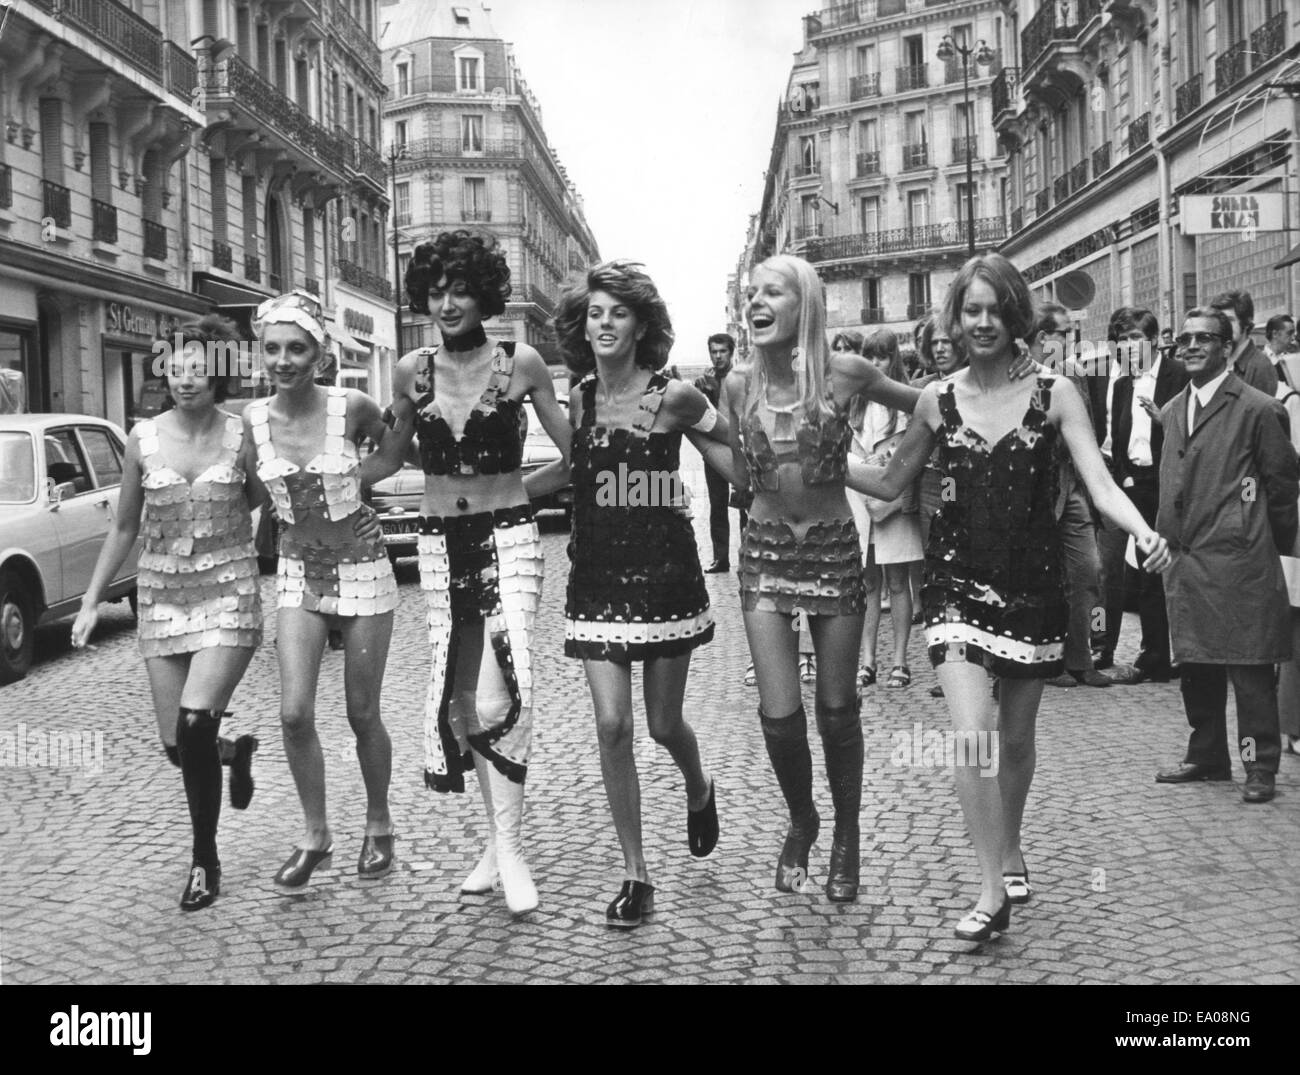 29th June, 1970. Evolutionary Assault Dress fashion in